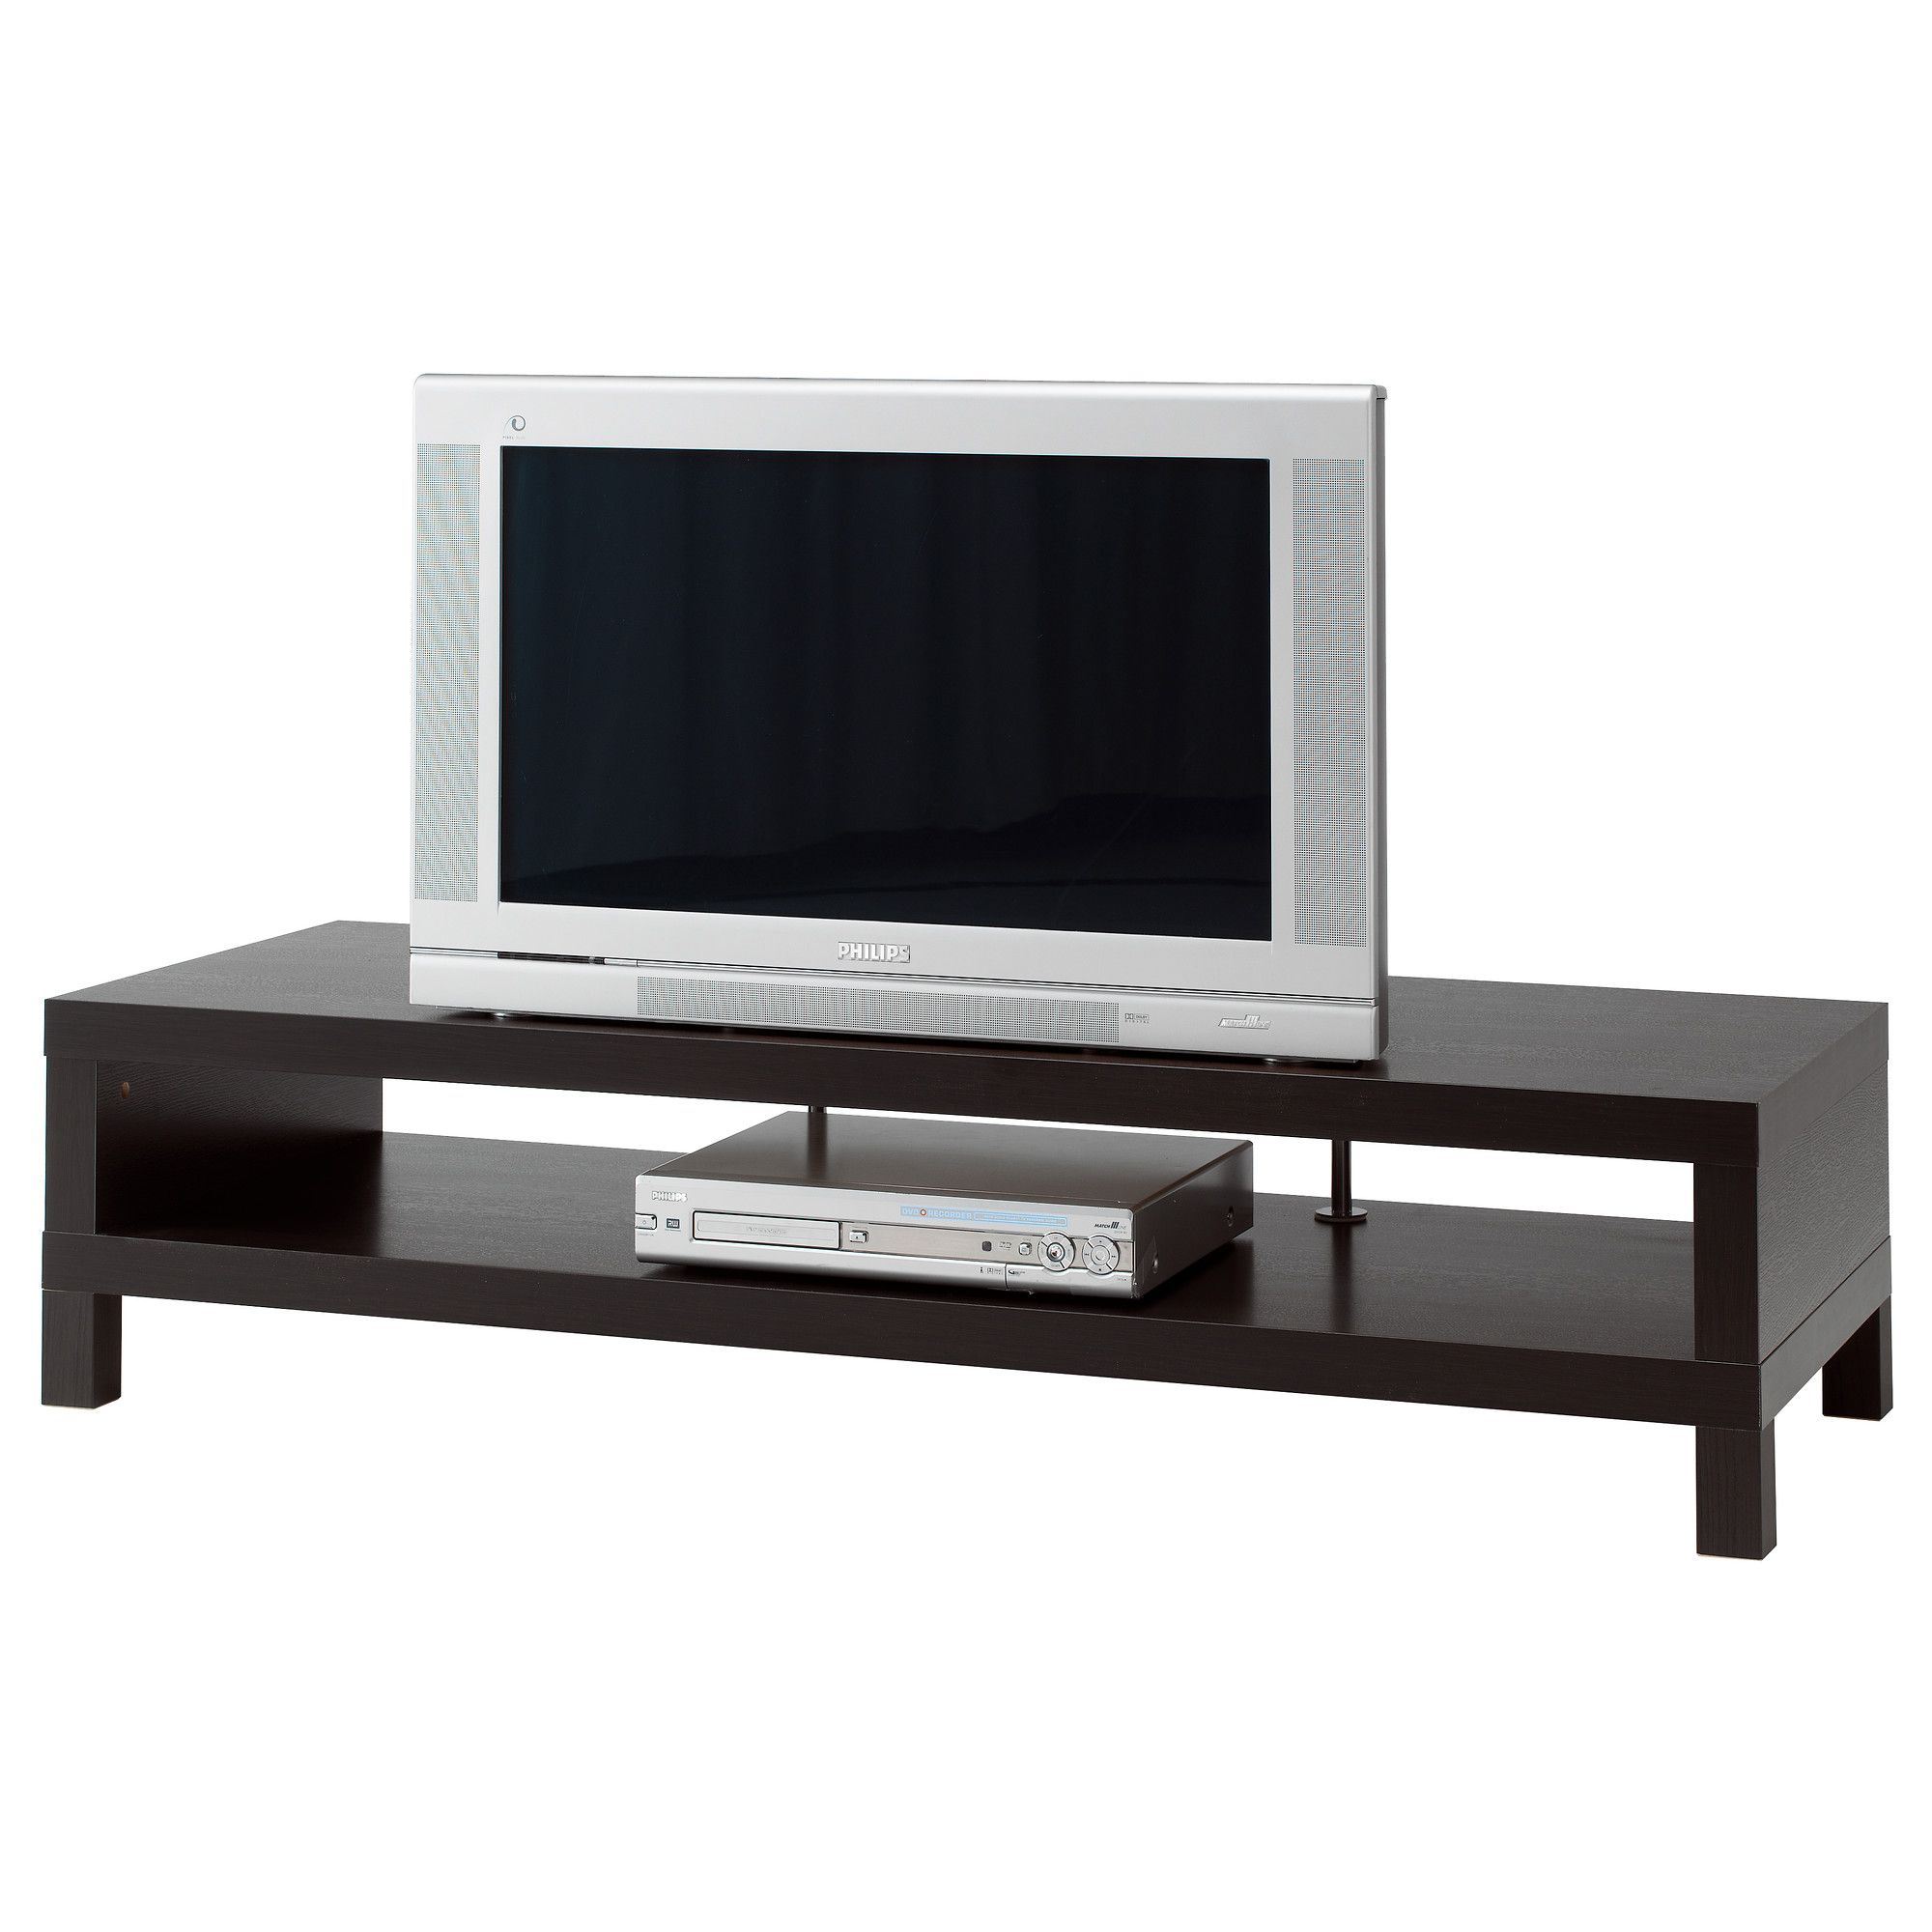 Lack Couchtisch Tv Lack Tv Unit Black Brown This Is The Board For Everything